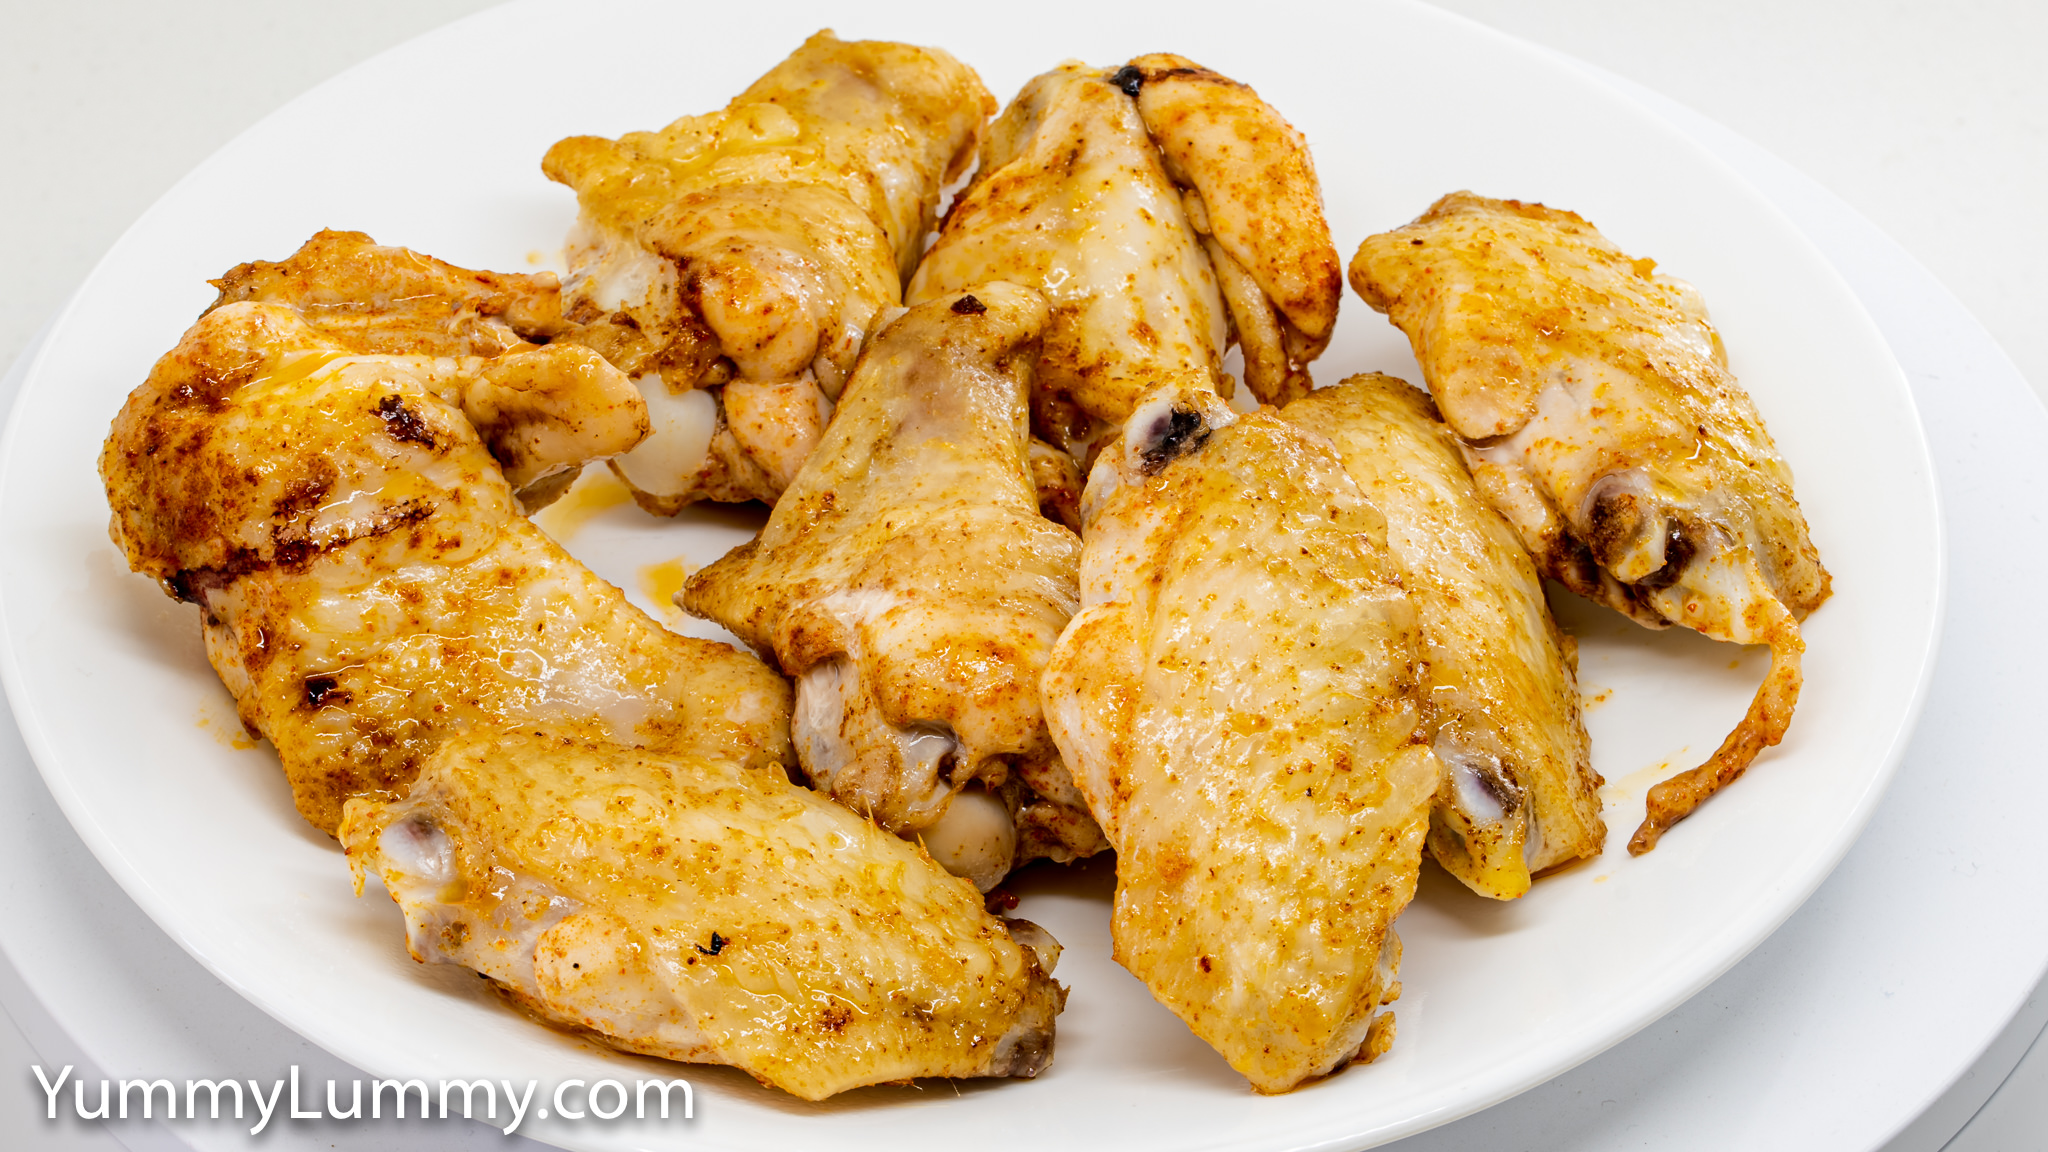 Photograph of Roast chicken wings with Sichuan seasoning. Gary Lum.